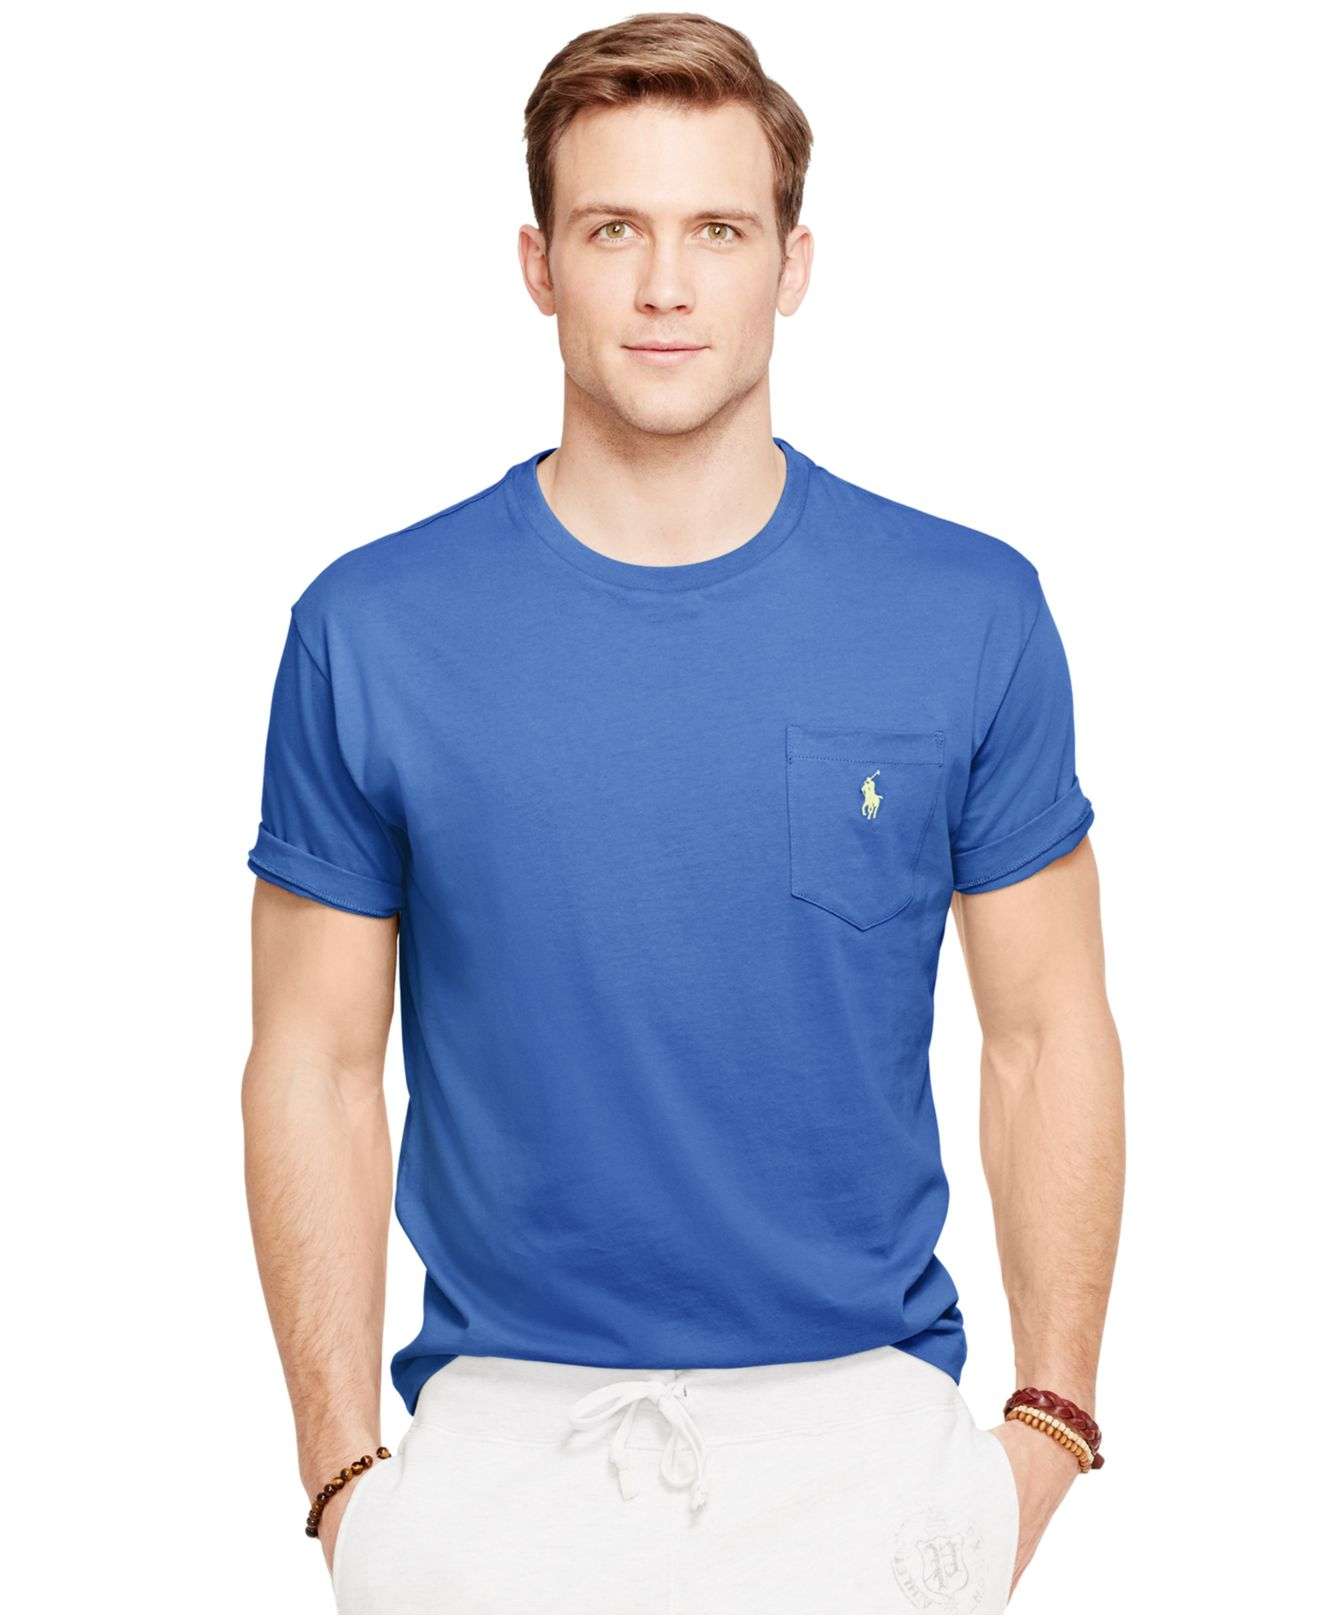 Ralph lauren tee with pocket for Two pocket polo shirt